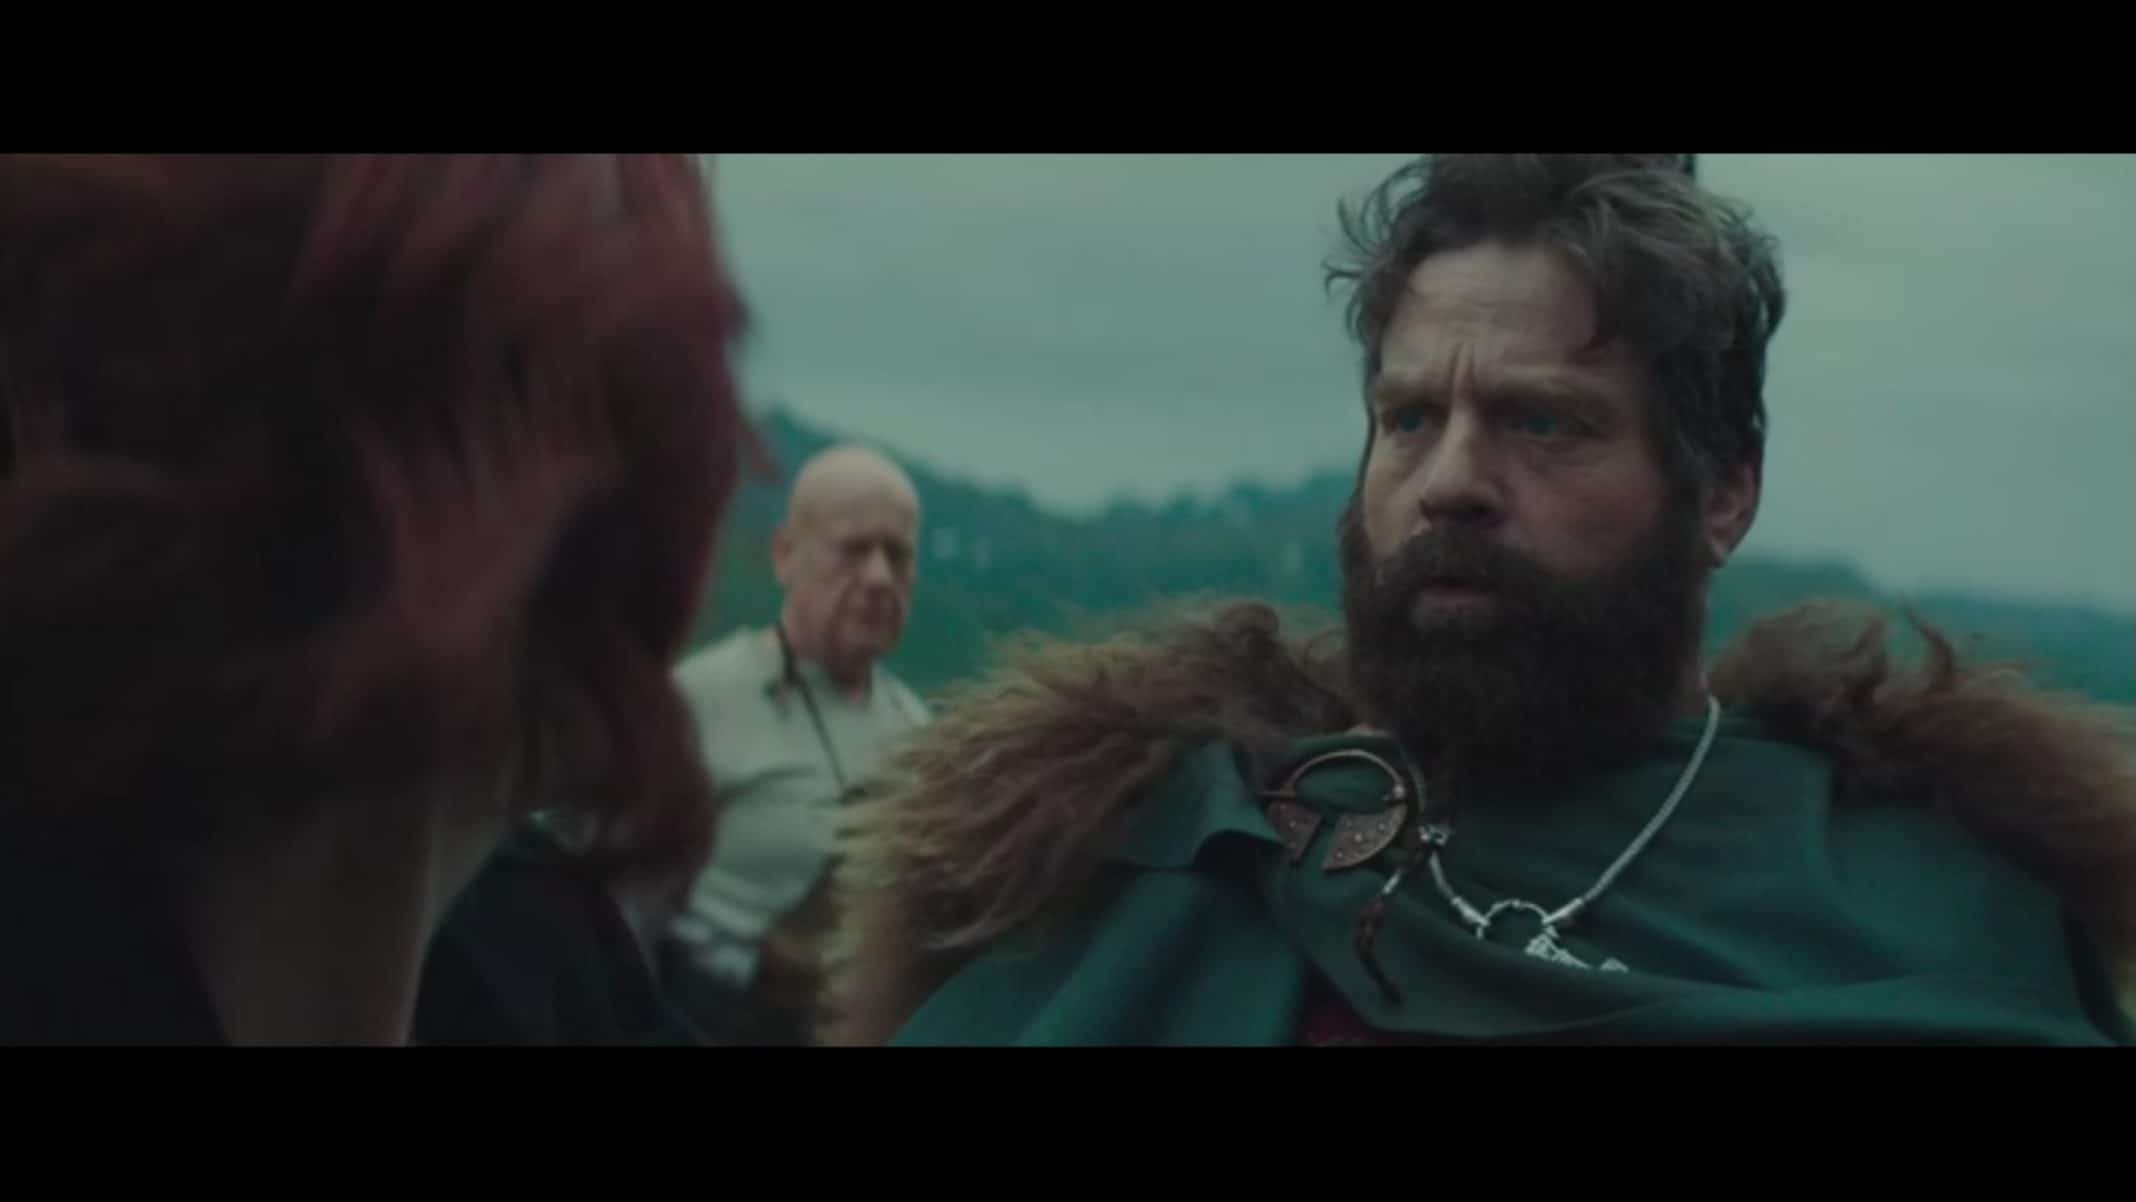 Haldor (Zach Galifianakis) in a viking outfit.